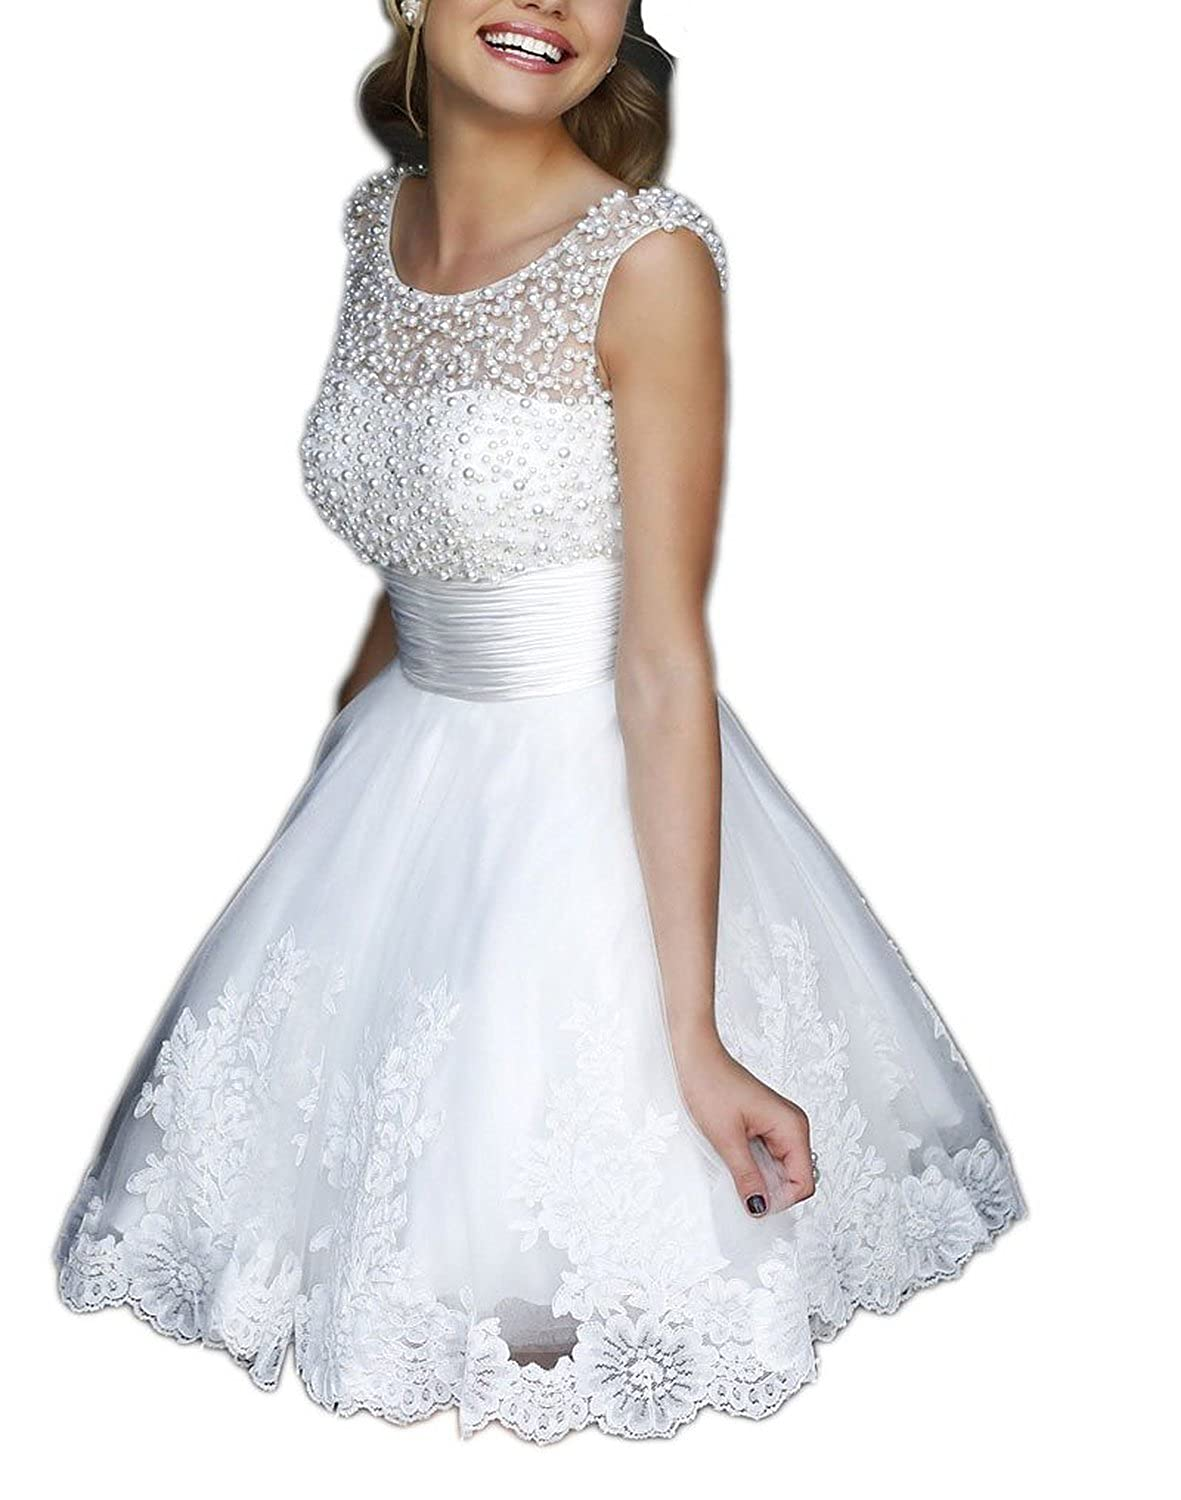 Sweety Bridal Charming A-line Beaded Lace Short Empire Wedding Dress Prom Dresses